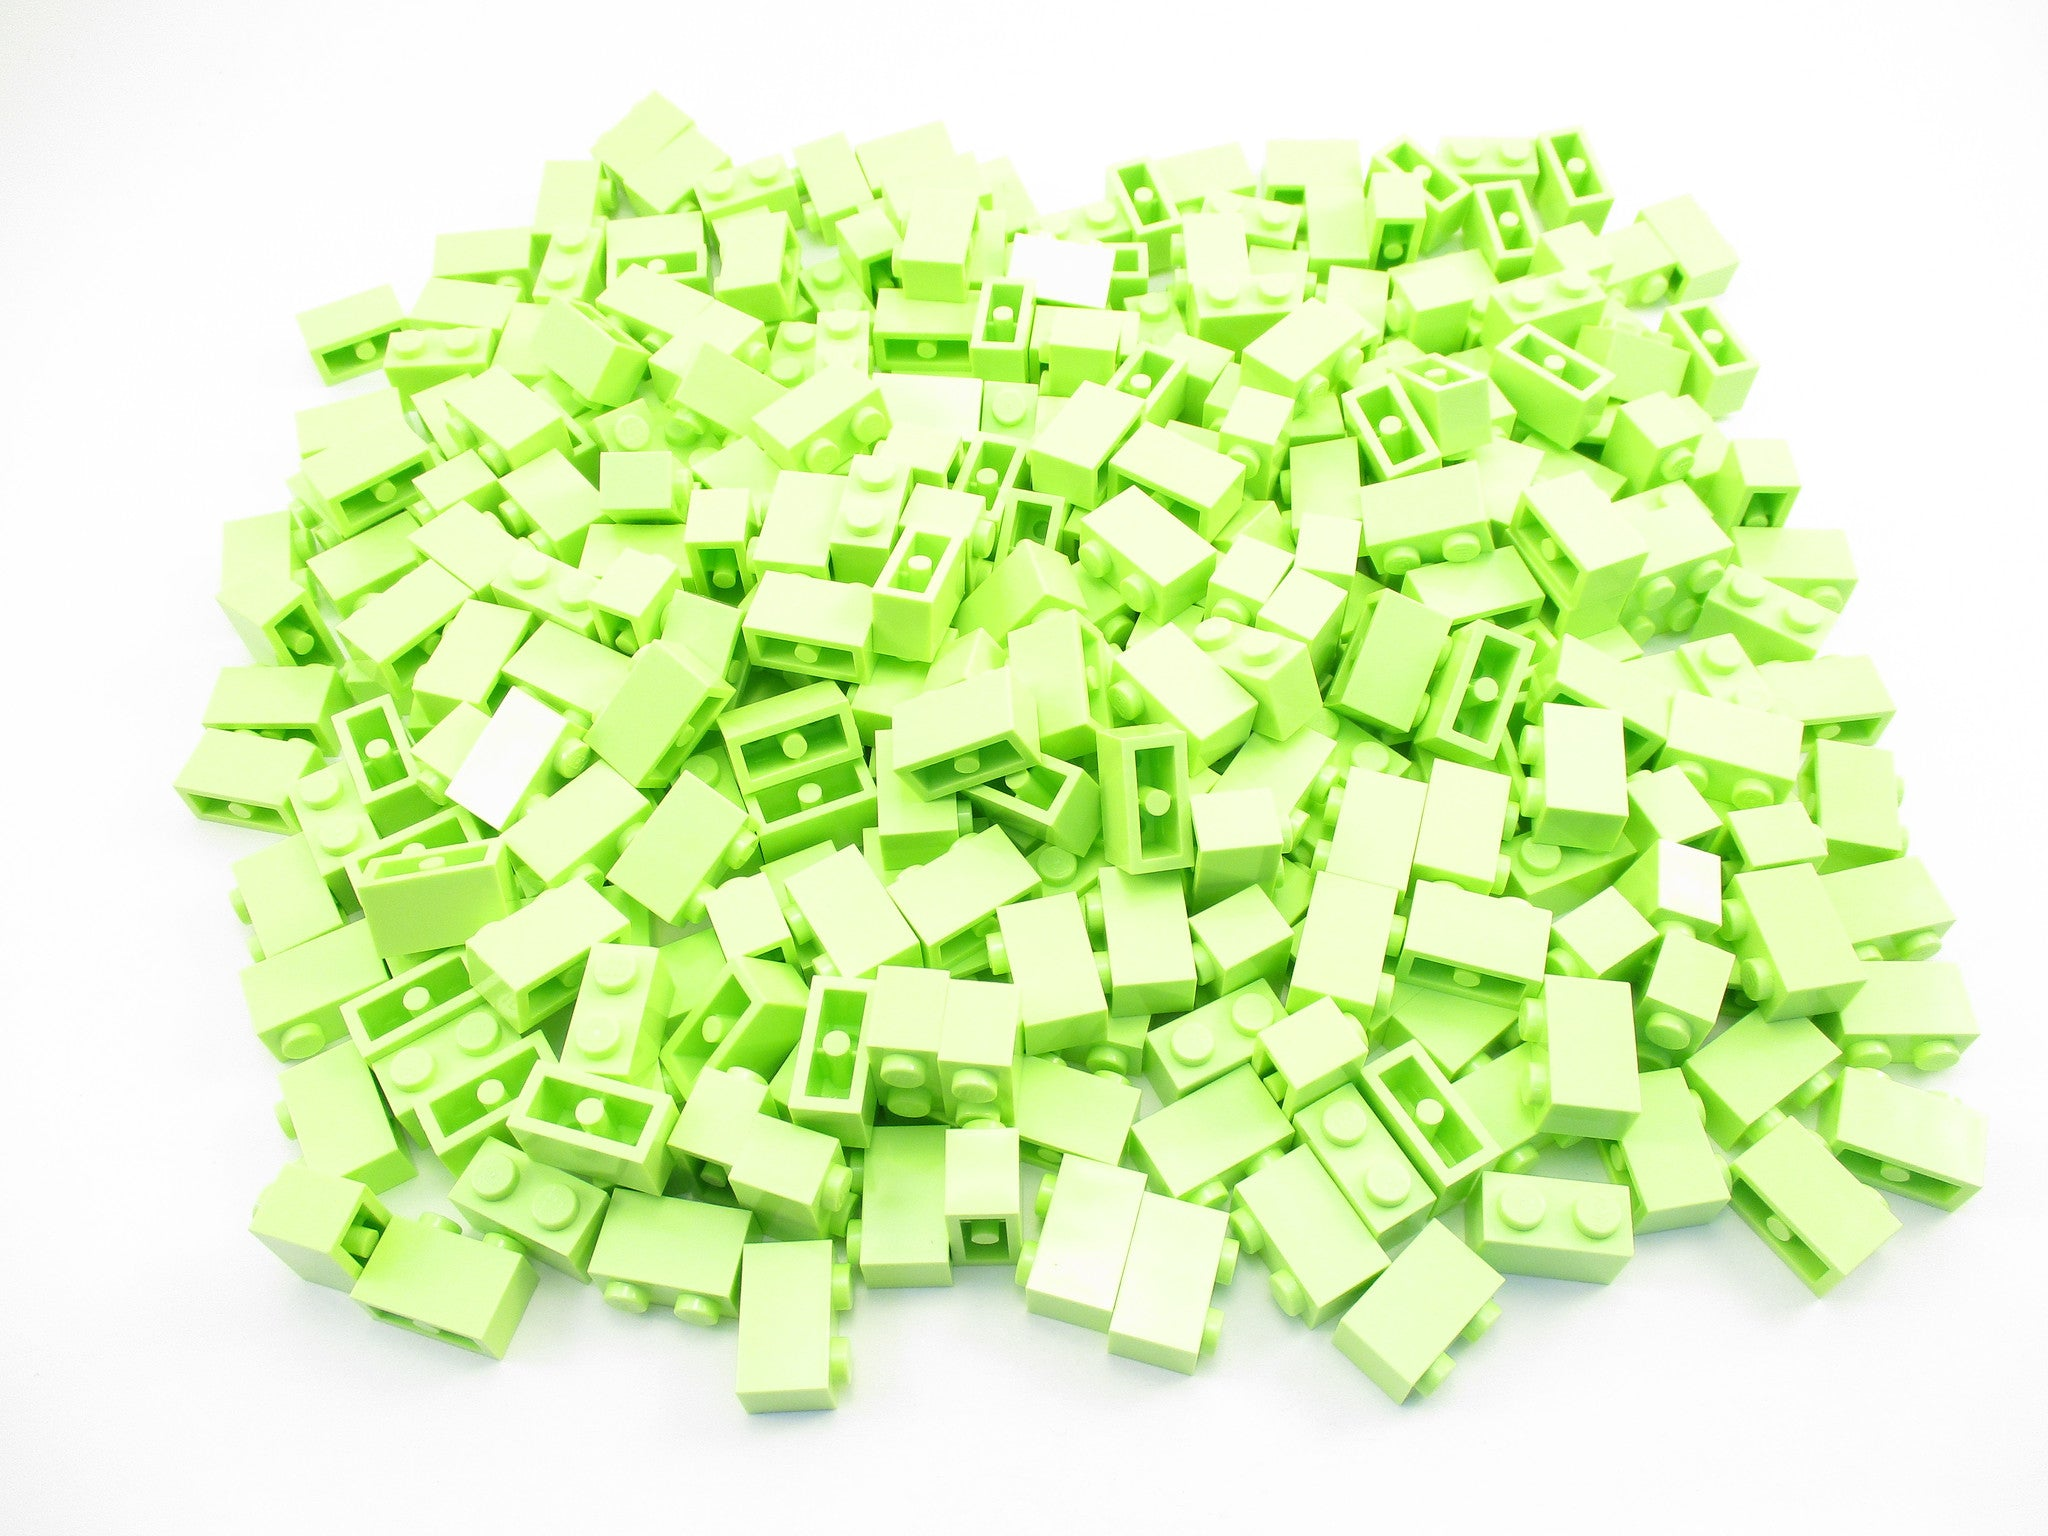 LEGO Yellowish Green Brick 1x2 Lot of 100 Parts Pieces 3004